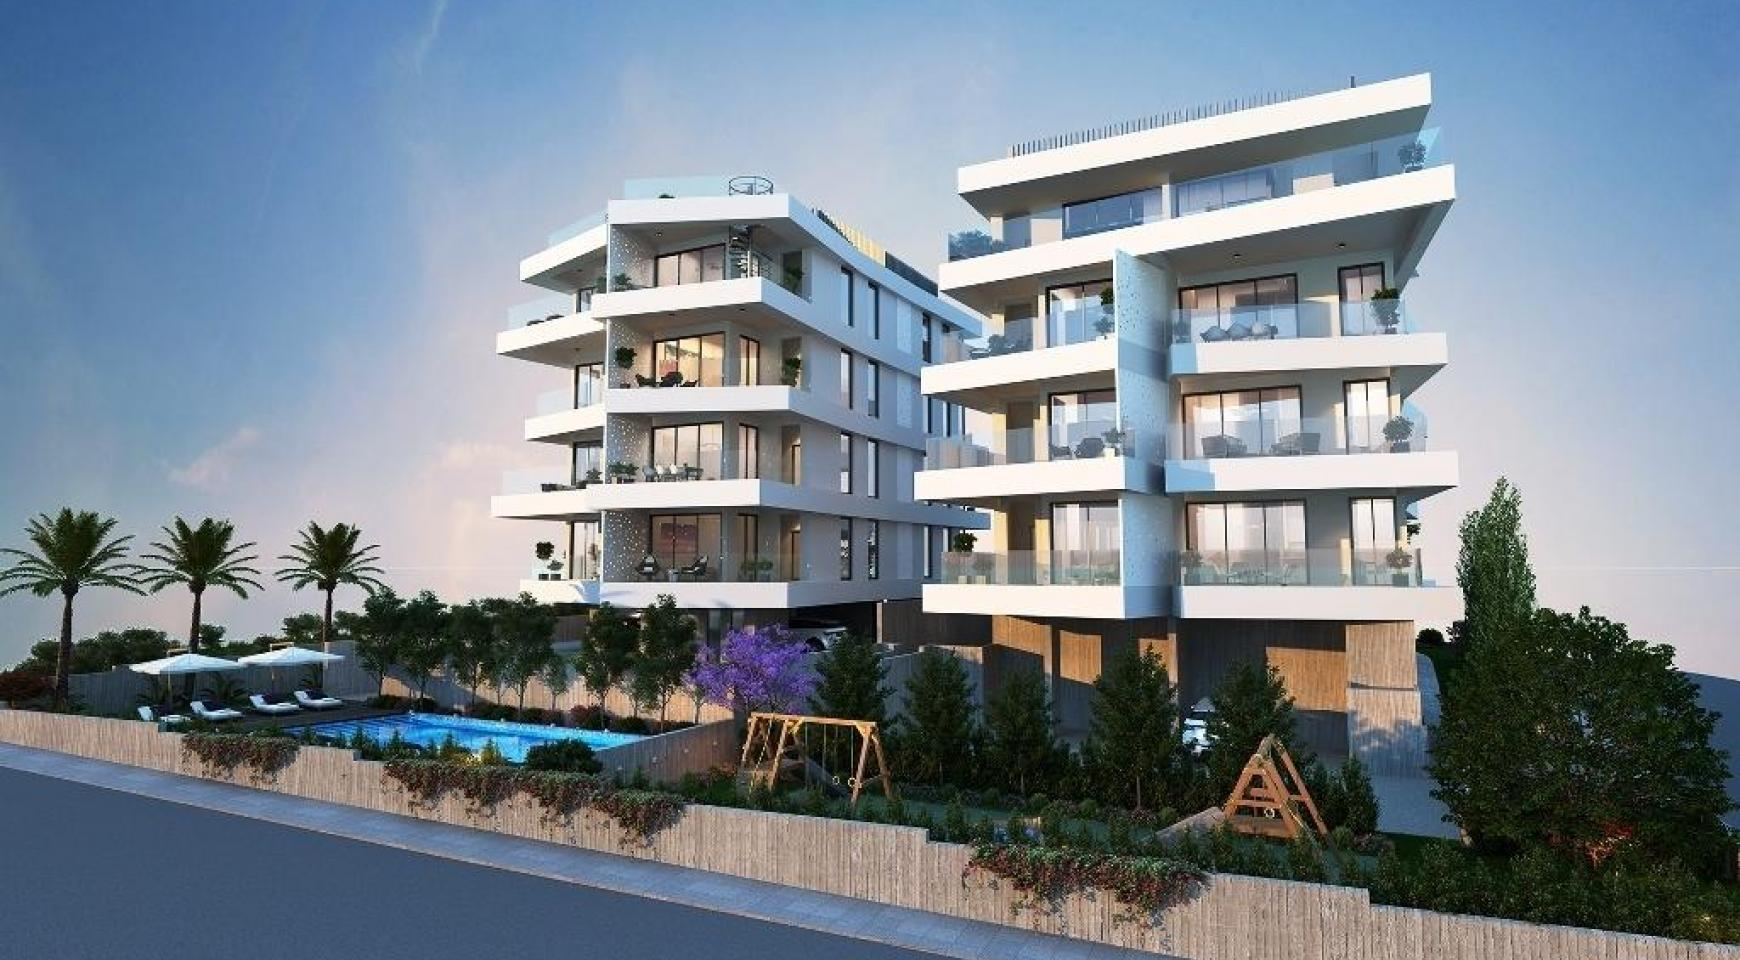 New 3 Bedroom Apartment in a Contemporary Building in Germasogeia - 7